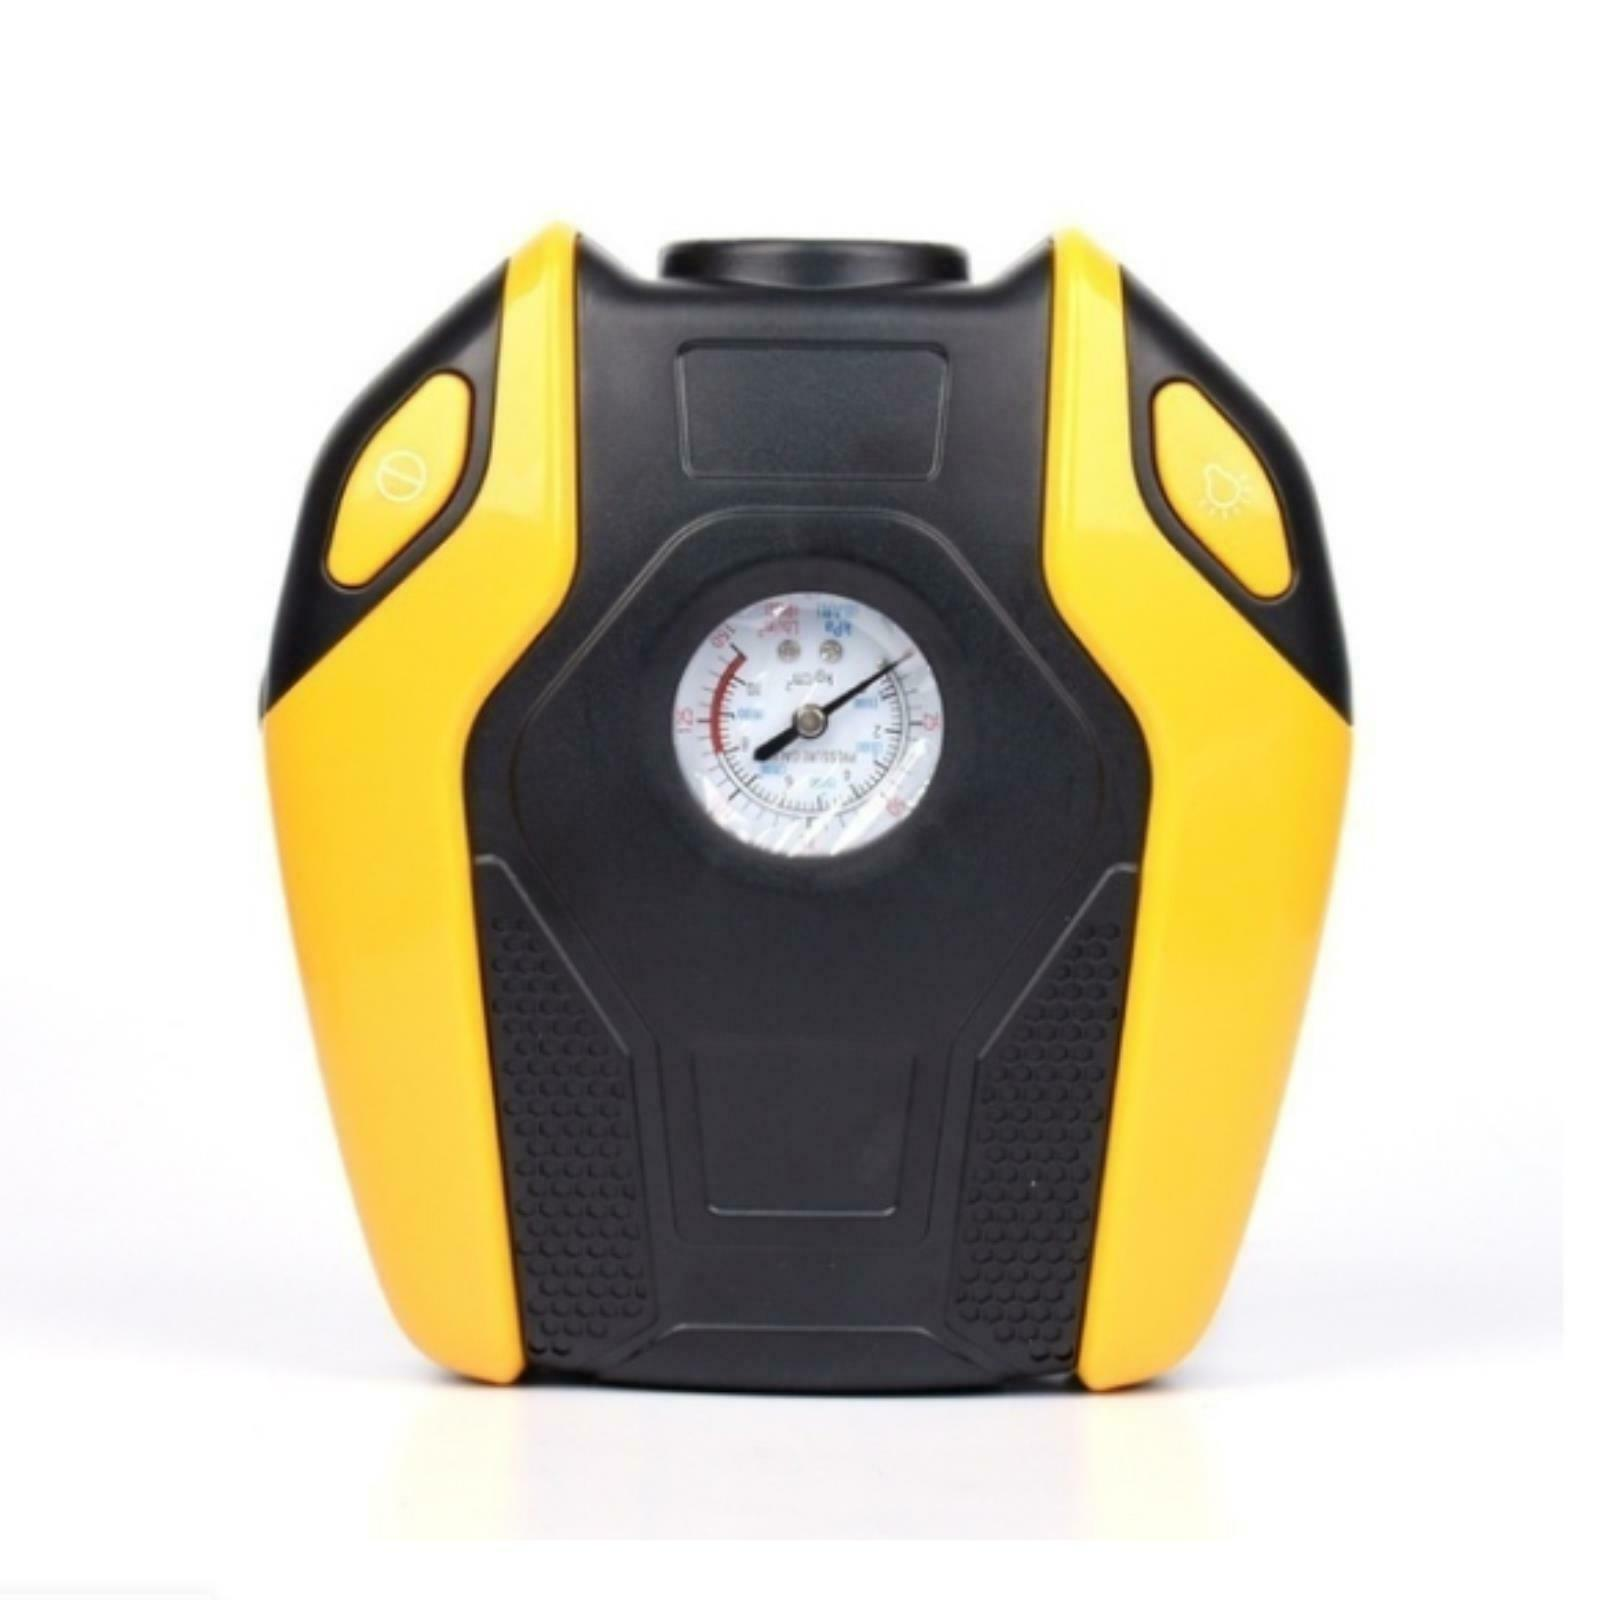 12V Portable Air Compressor Pump Tire Inflator Car Truck Bicycle Supplies Yellow